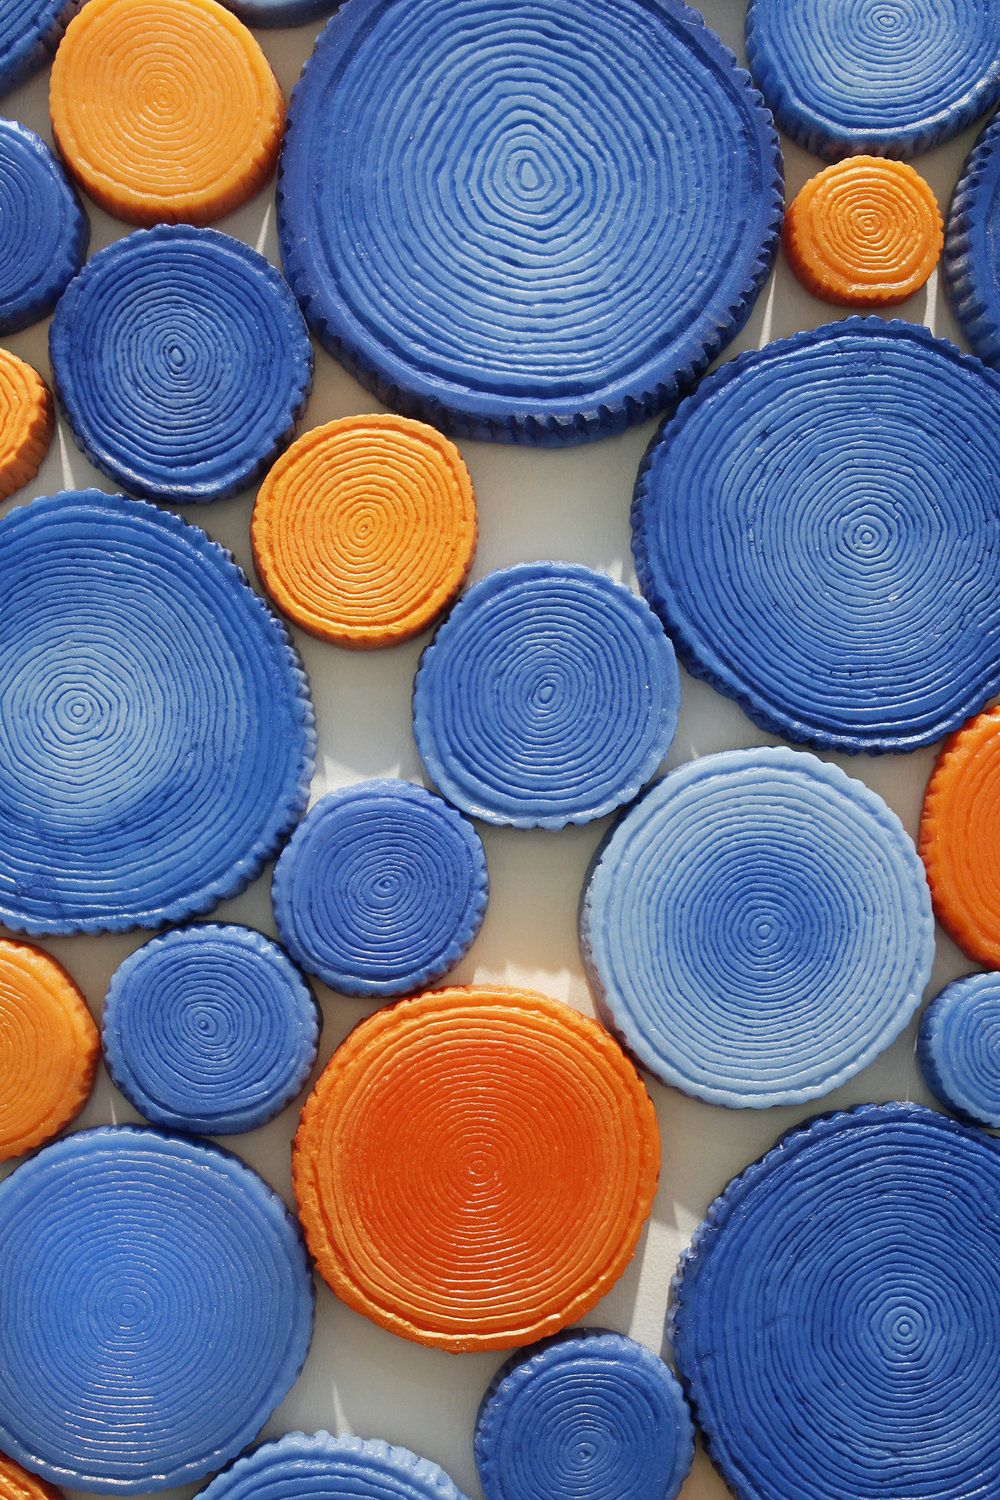 27_FOX_Blue Orange detail.jpg